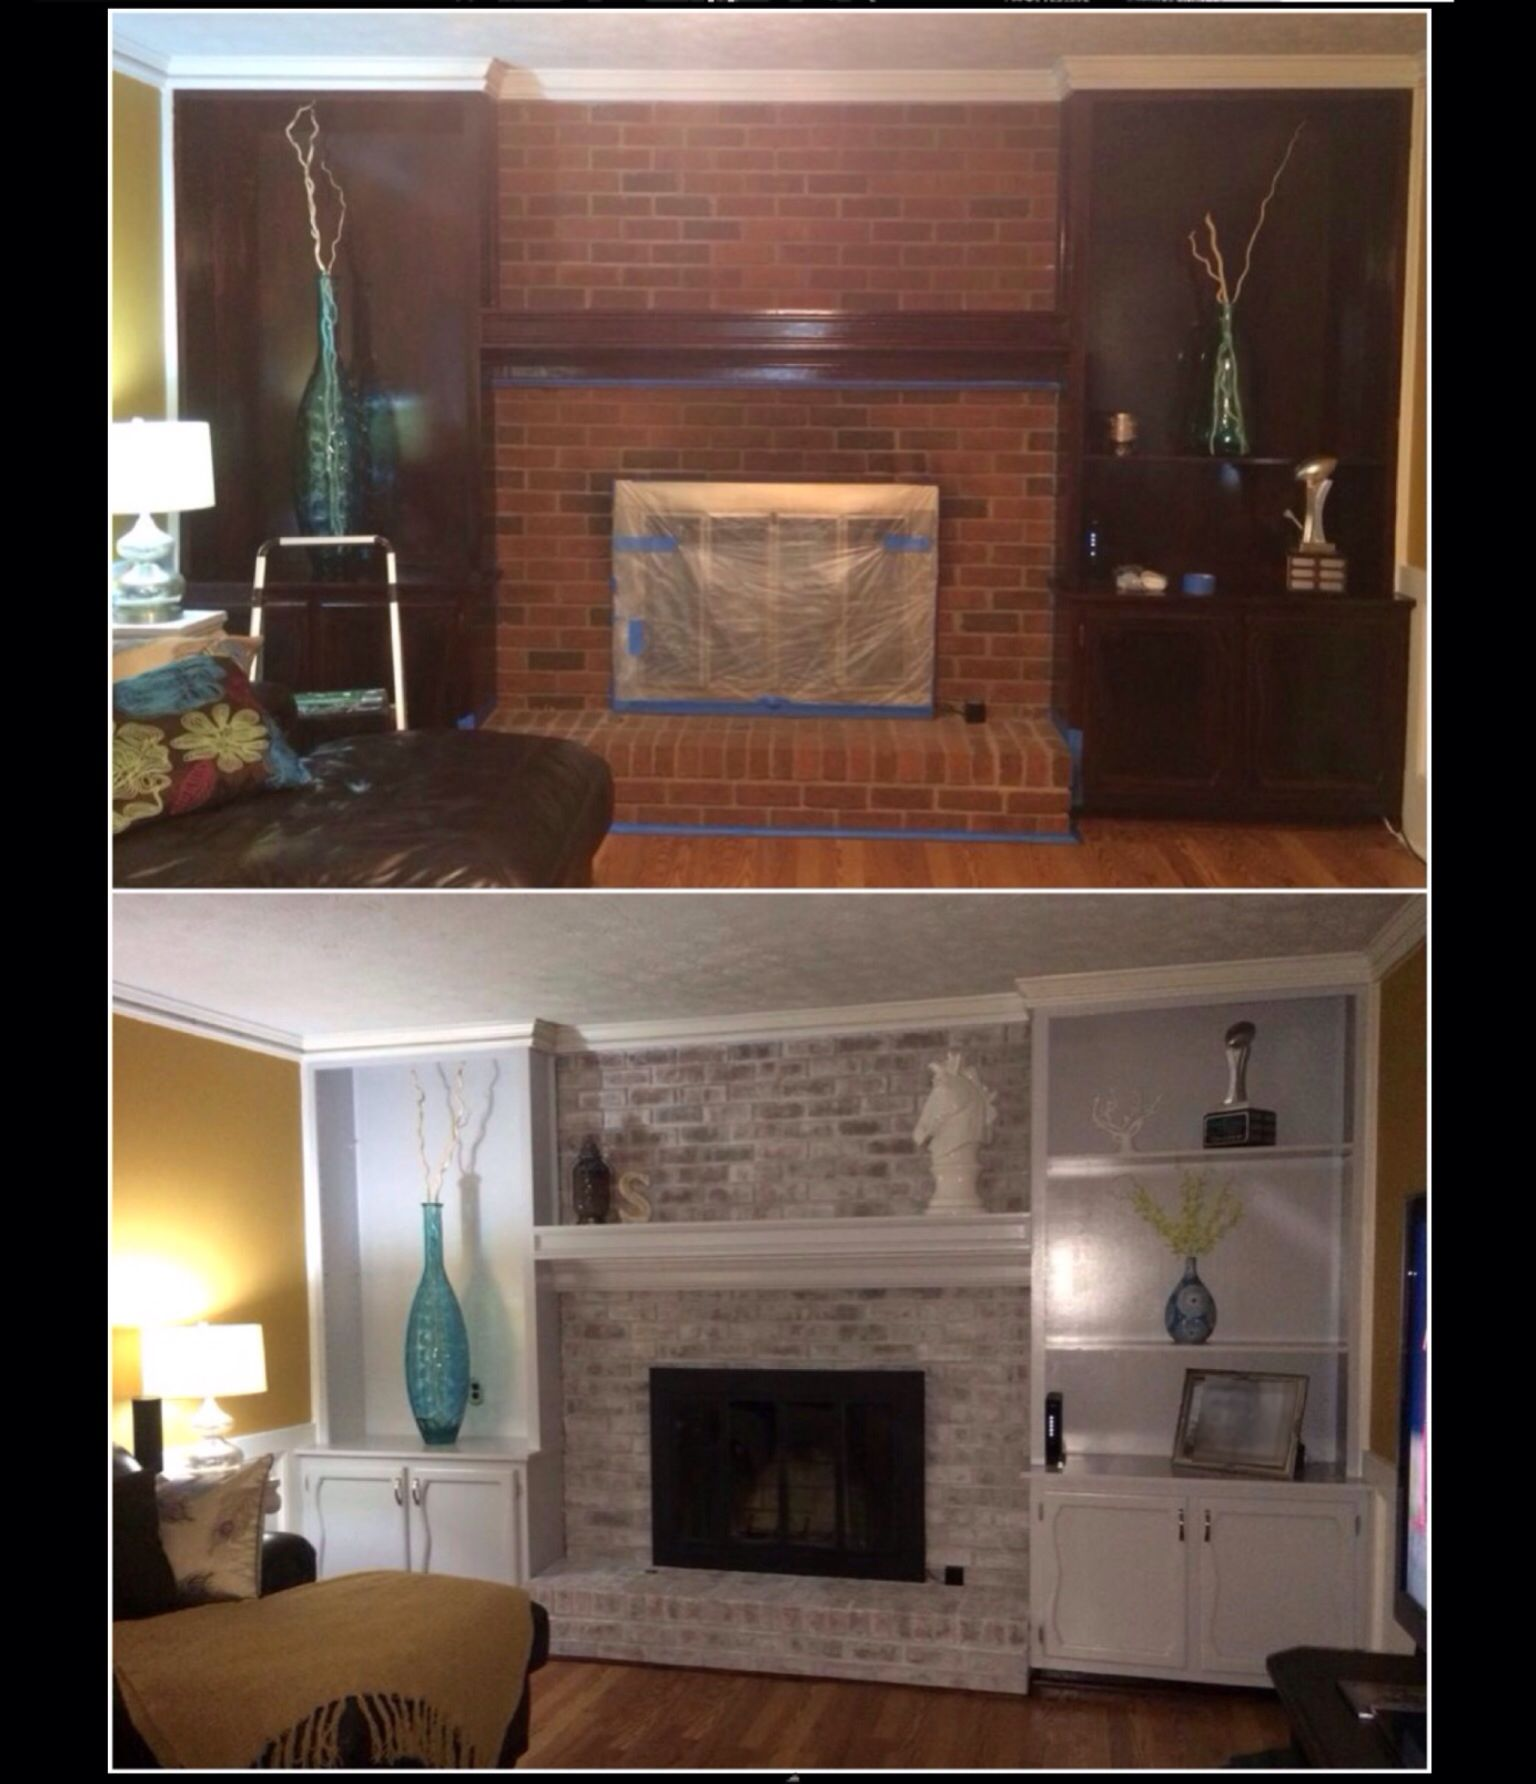 Whitewash Brick Sanded And Repainted Bookends With Oil Base Exterior Bear Paint Spray Painted Fireplace Trim Ulta High Heat